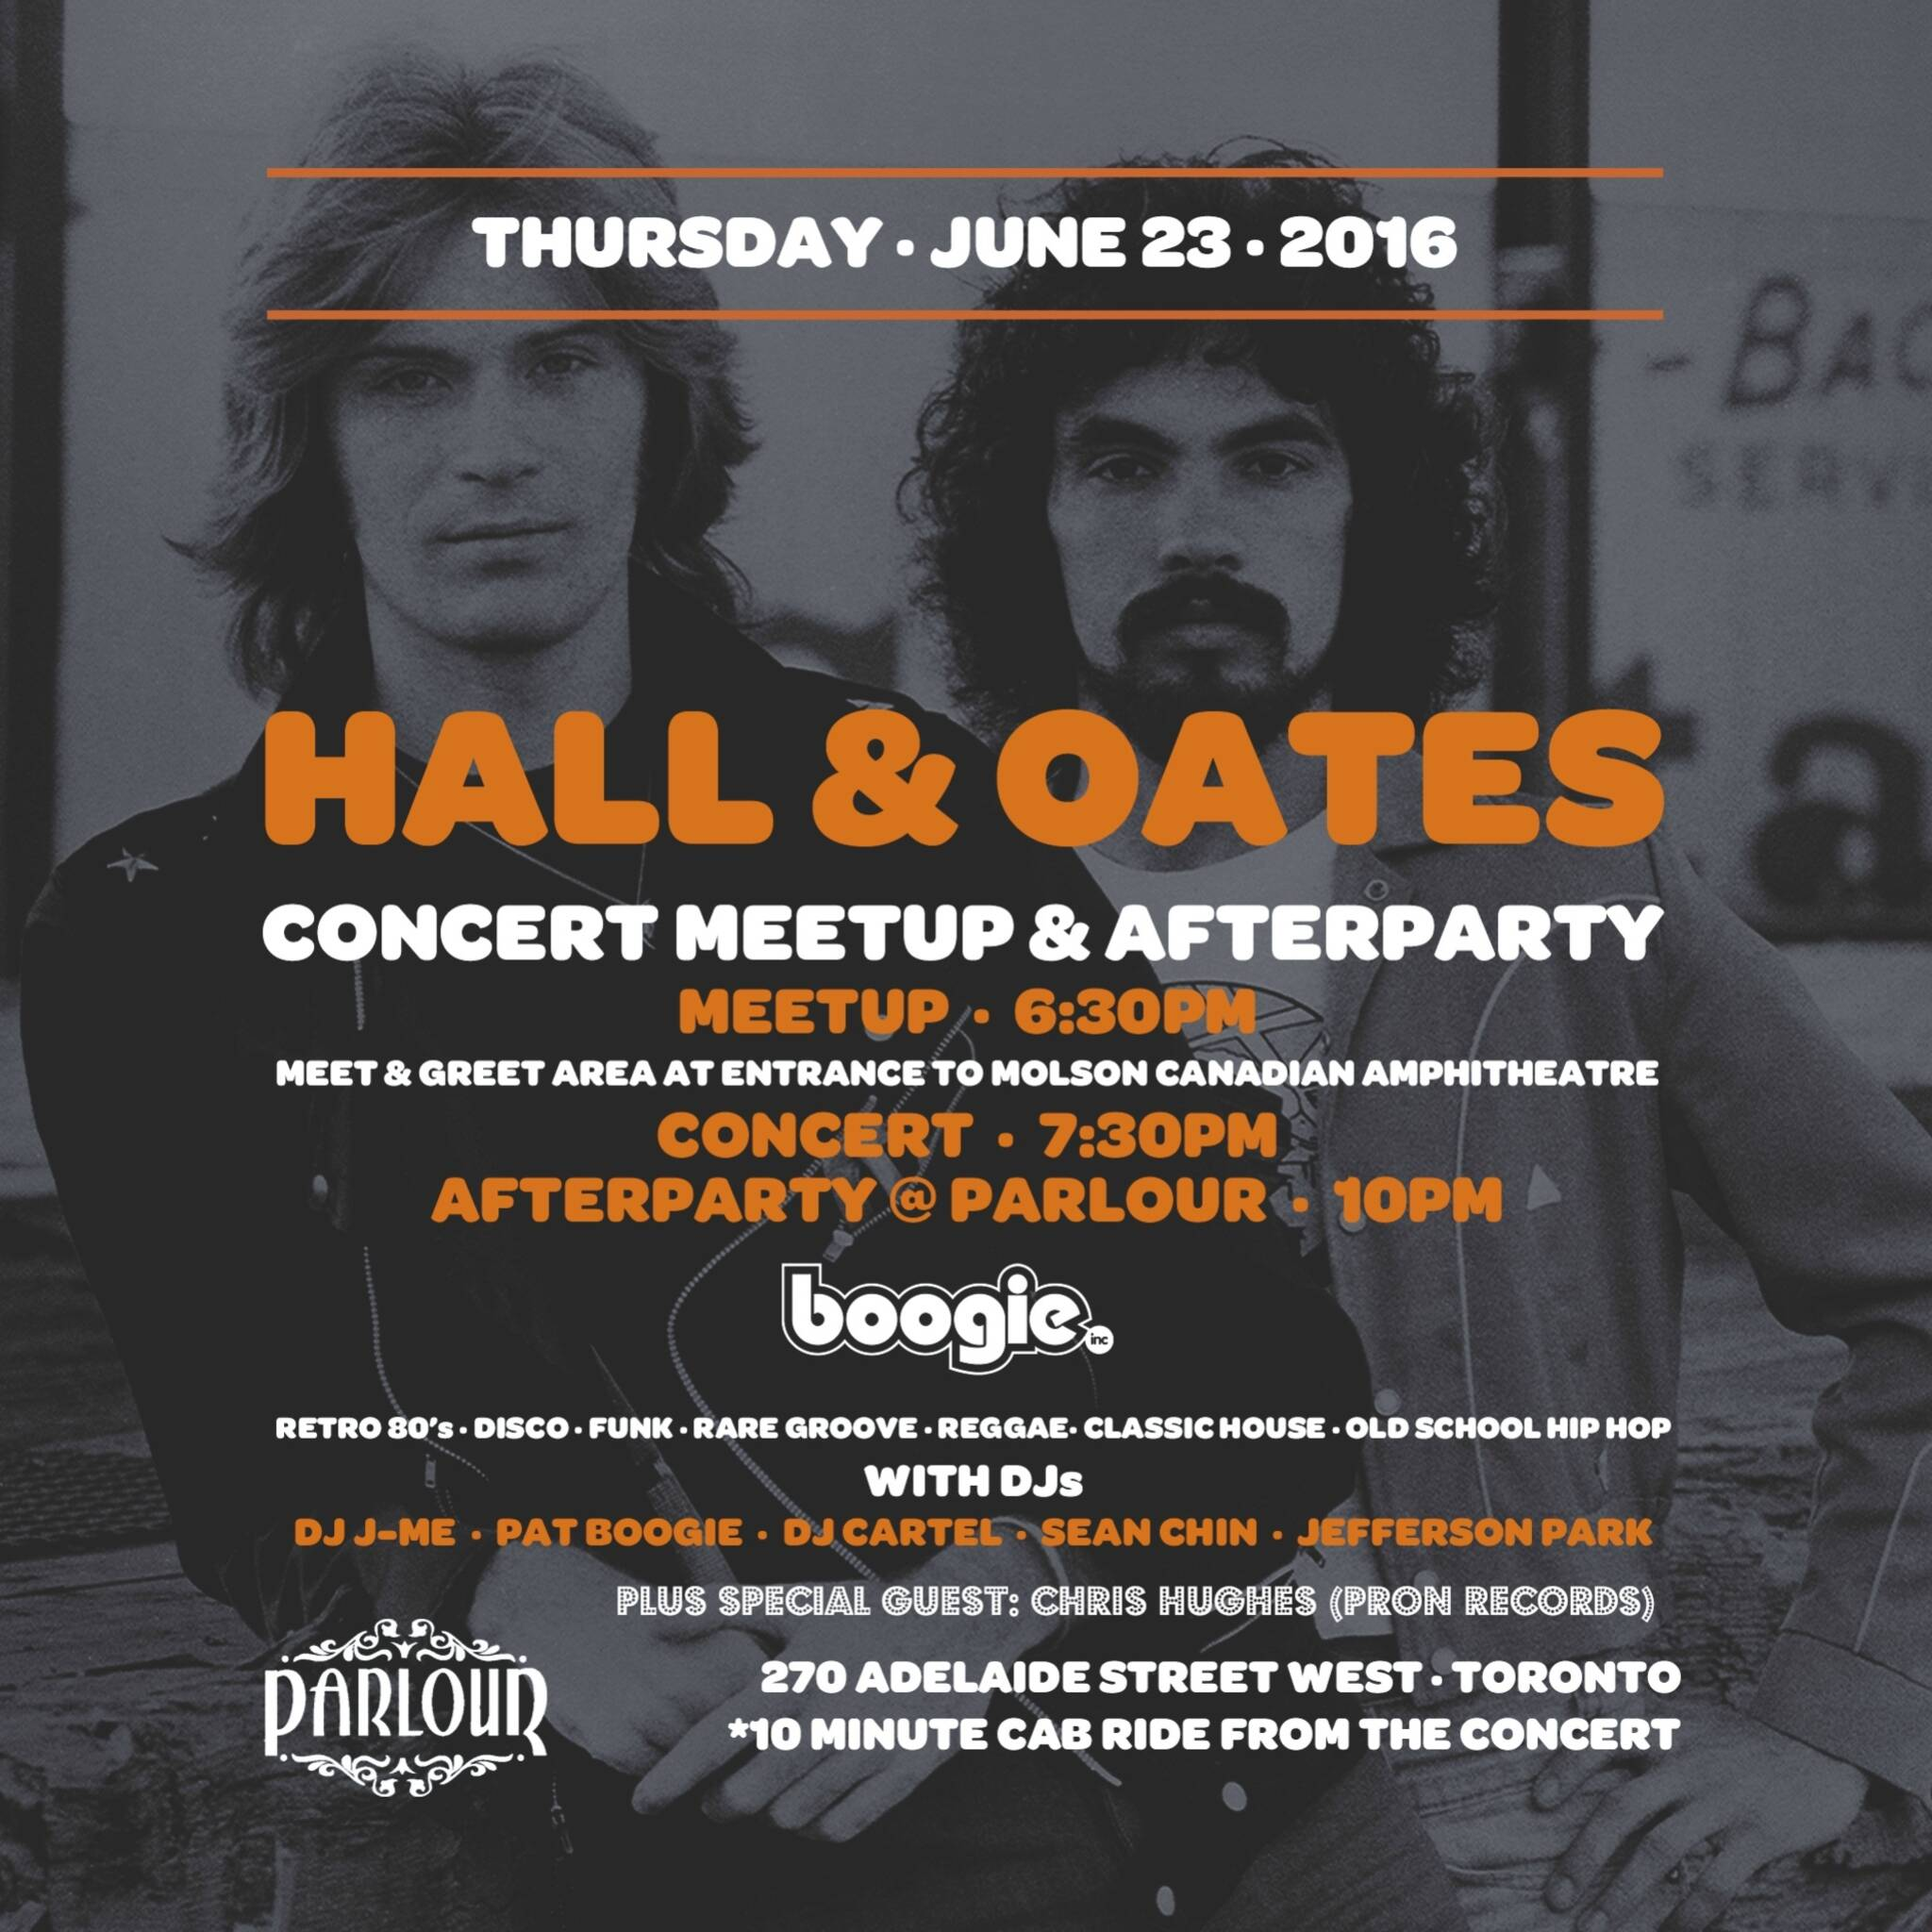 Hall oates concert meetup afterparty m4hsunfo